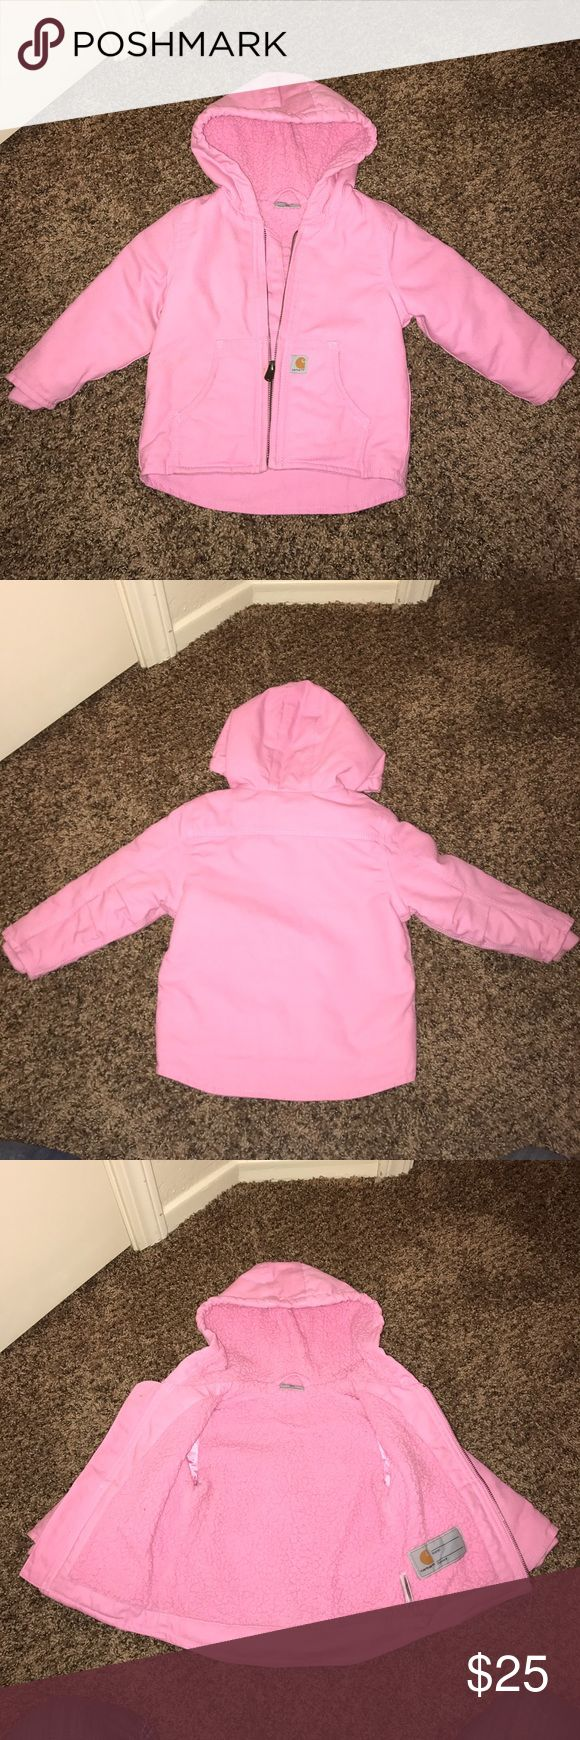 ❄️Carhartt Winter Coat❄️ Pink Carhartt winter coat 18 months, runs large. Last two pictures show very small spots, otherwise great condition. Carhartt Jackets & Coats